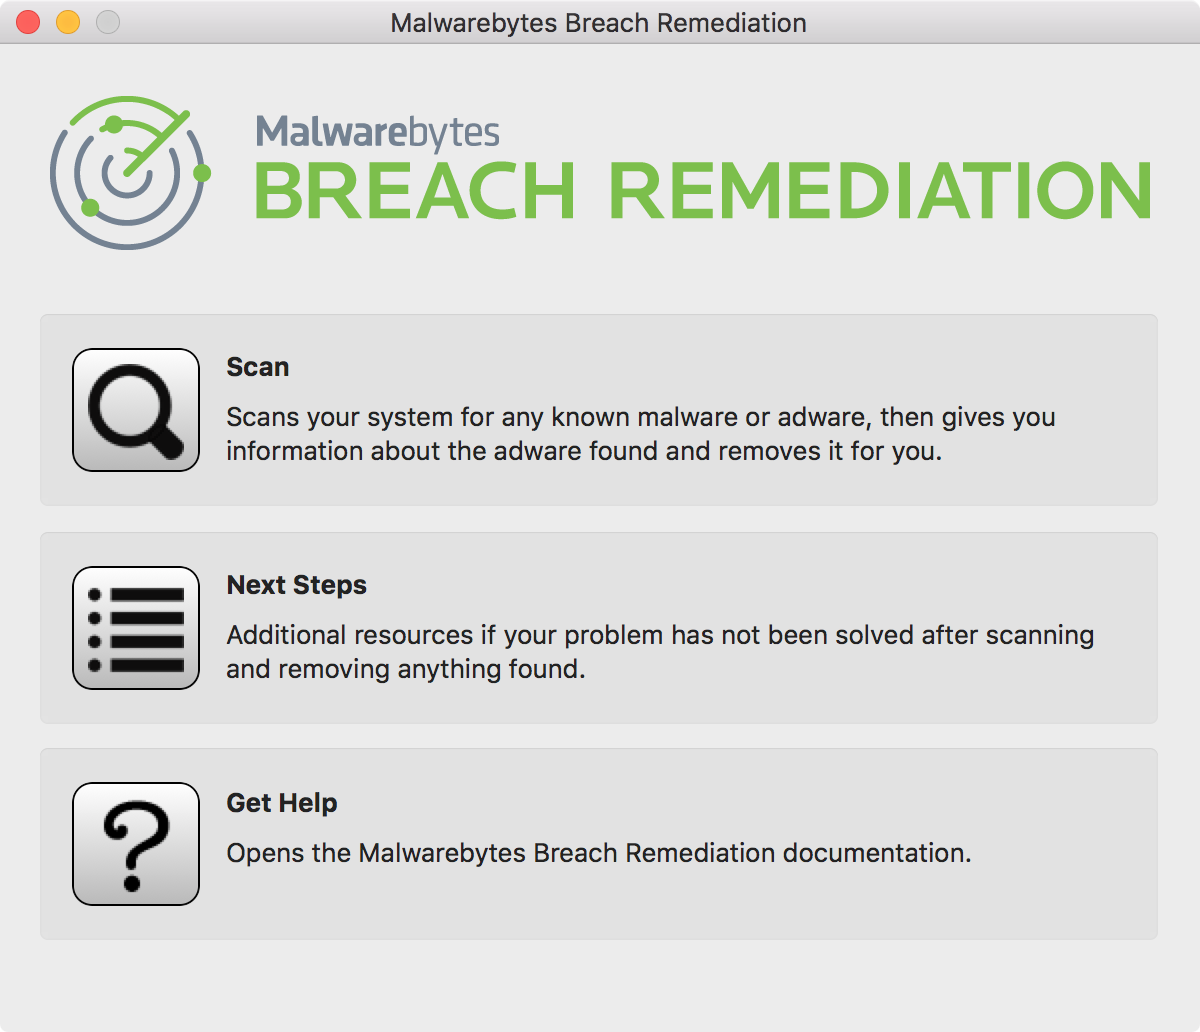 Malwarebytes Breach Remediation graphical user interface main screen